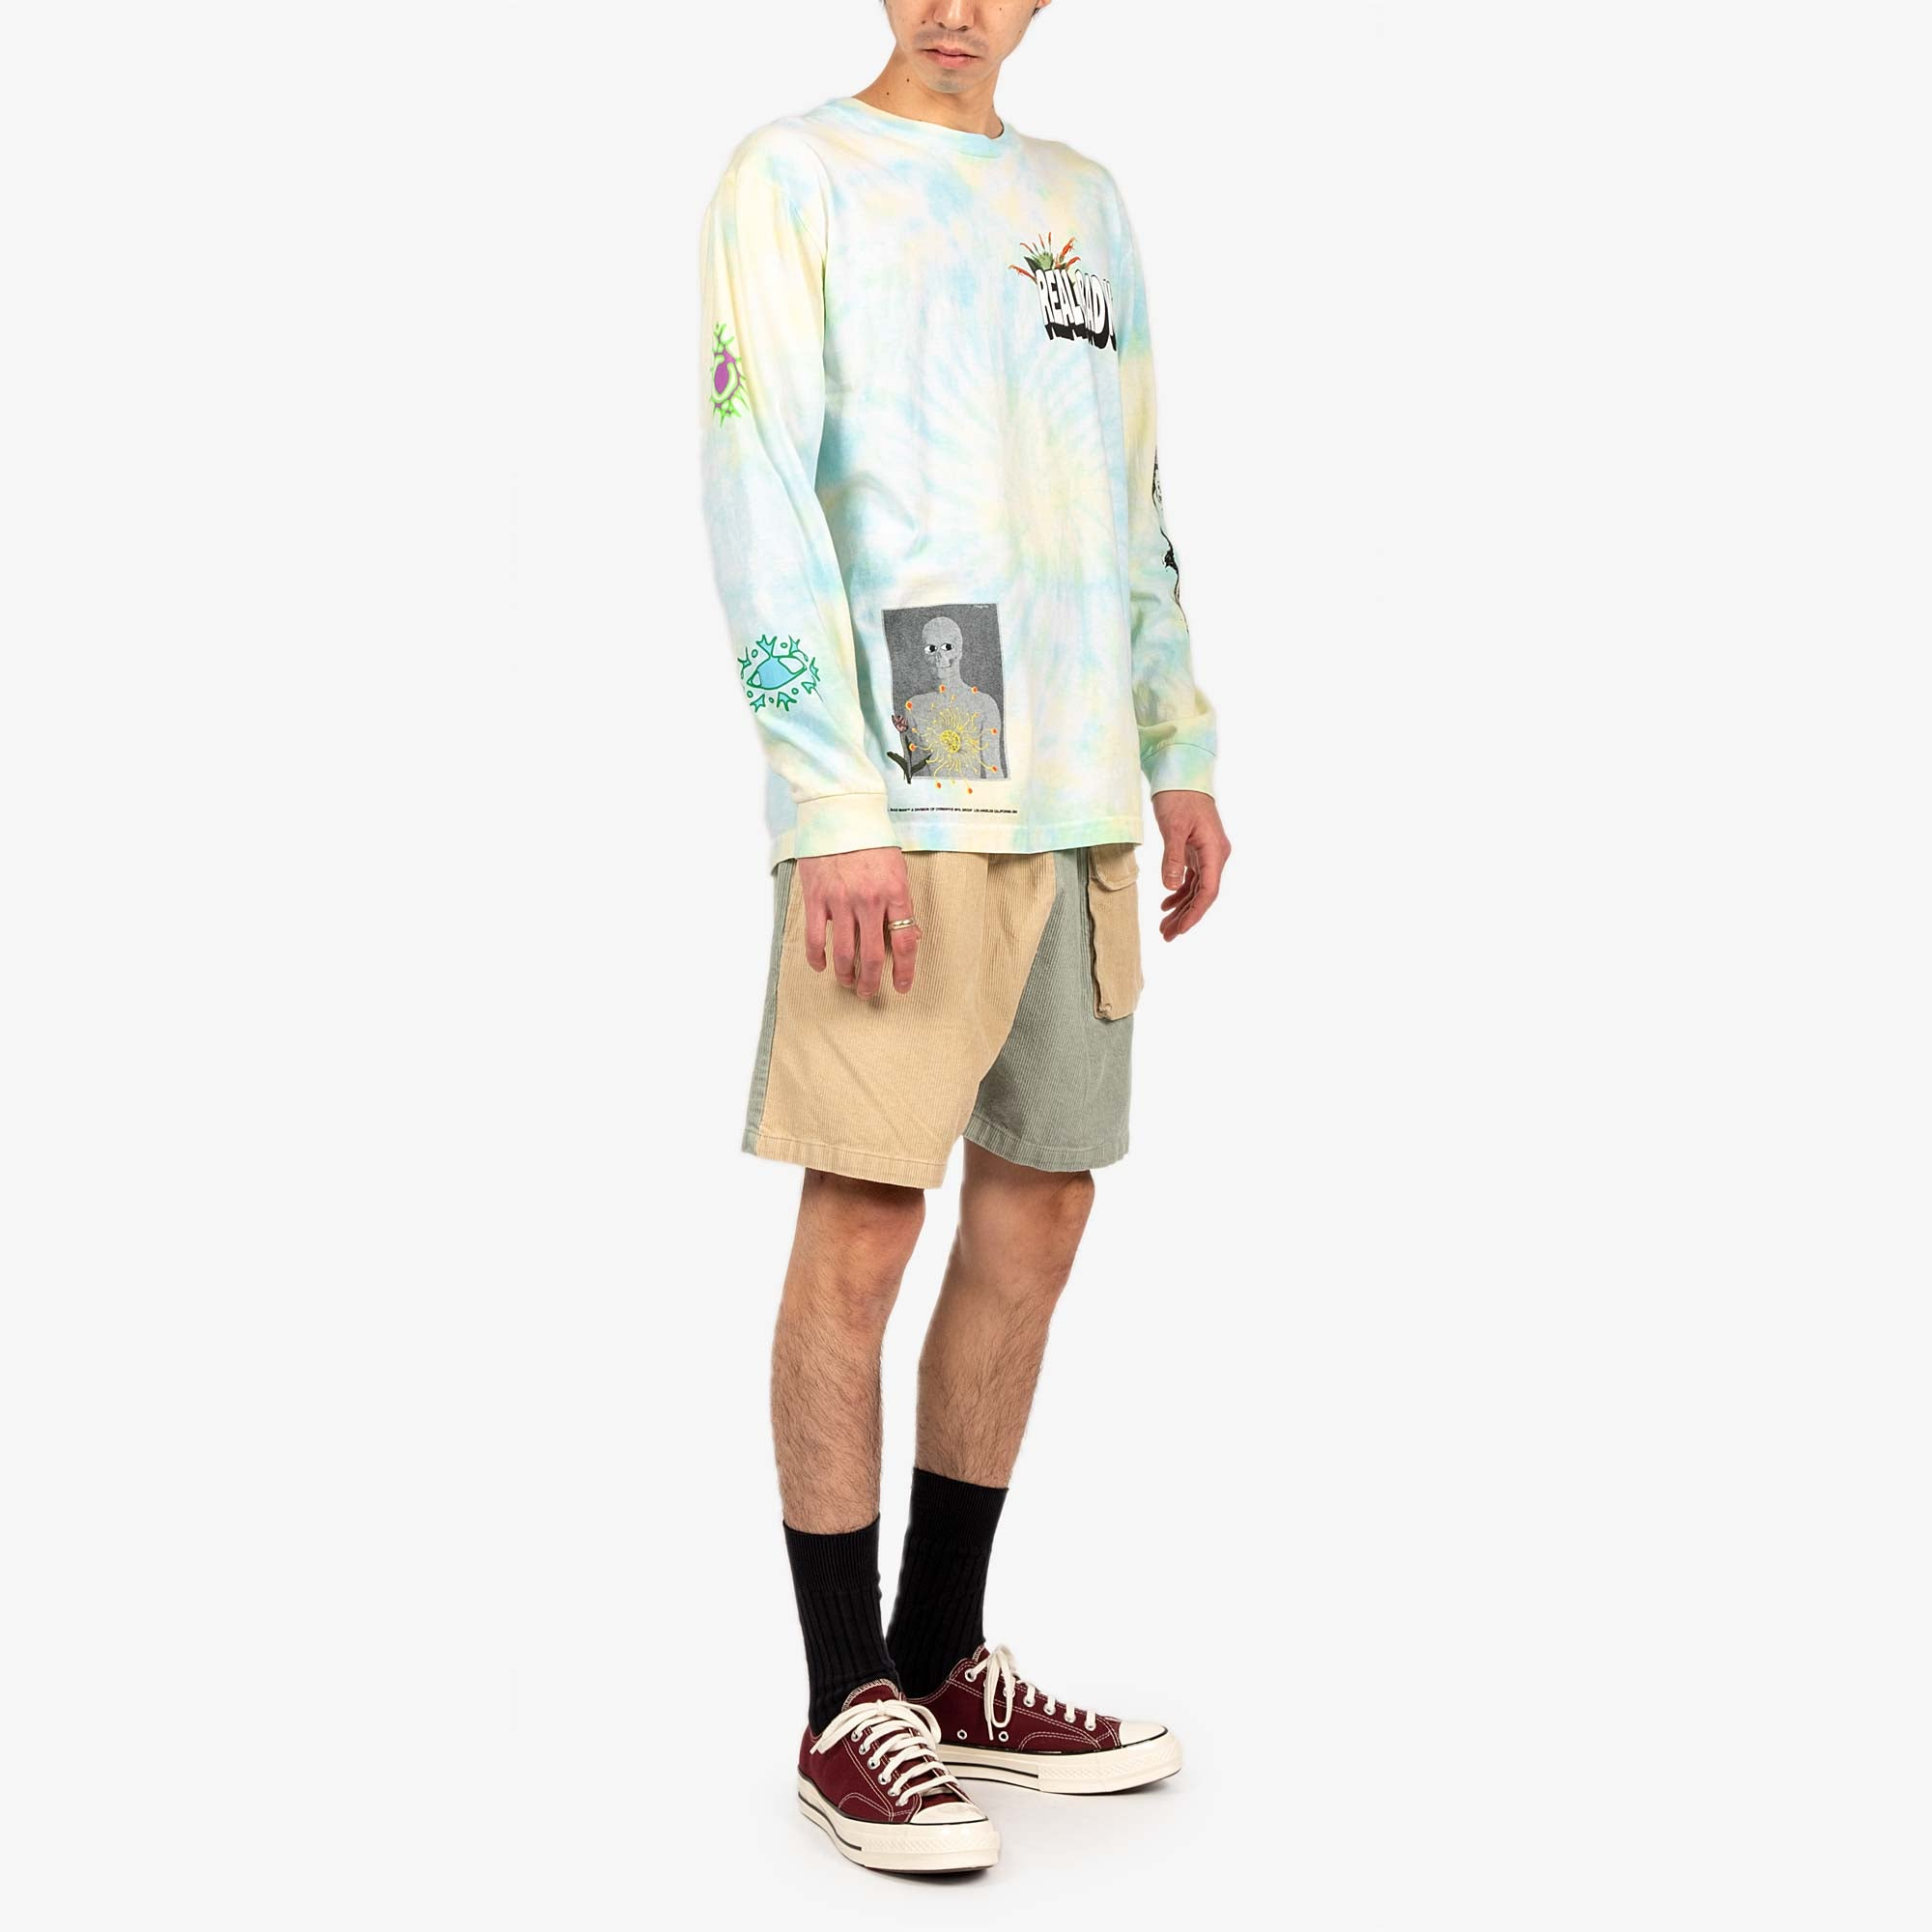 Real Bad Man From Outer Space LS Tee - Aqua / Yellow 7